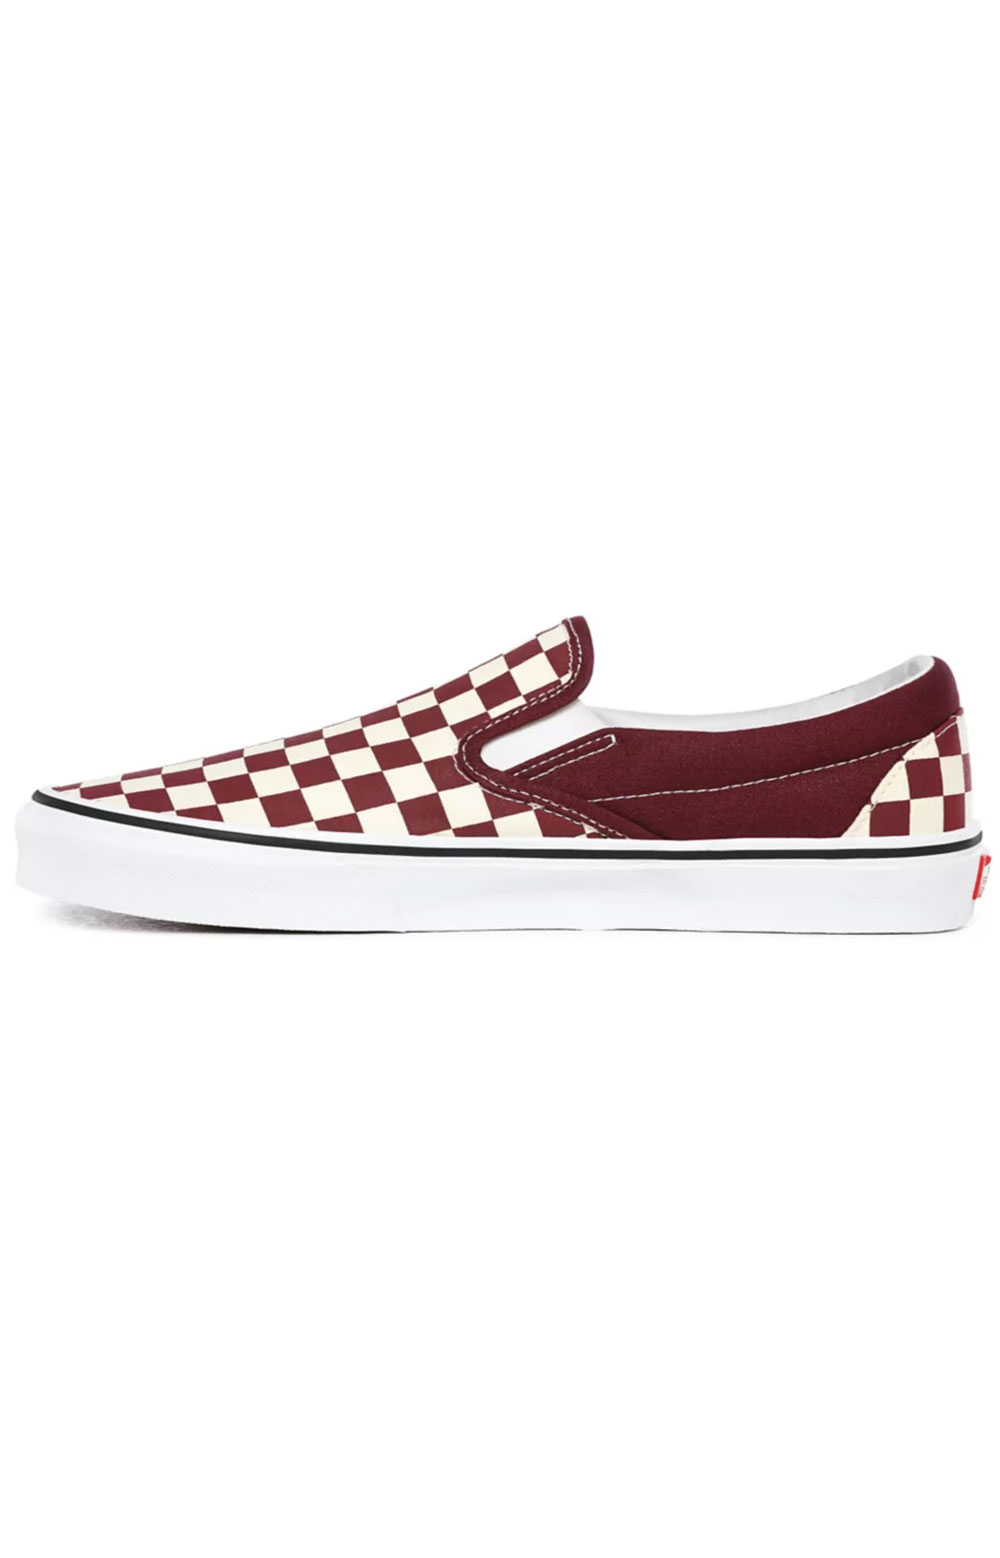 (BV3KZO) Checkerboard Classic Slip-On Shoes- Port Royale/True White  2